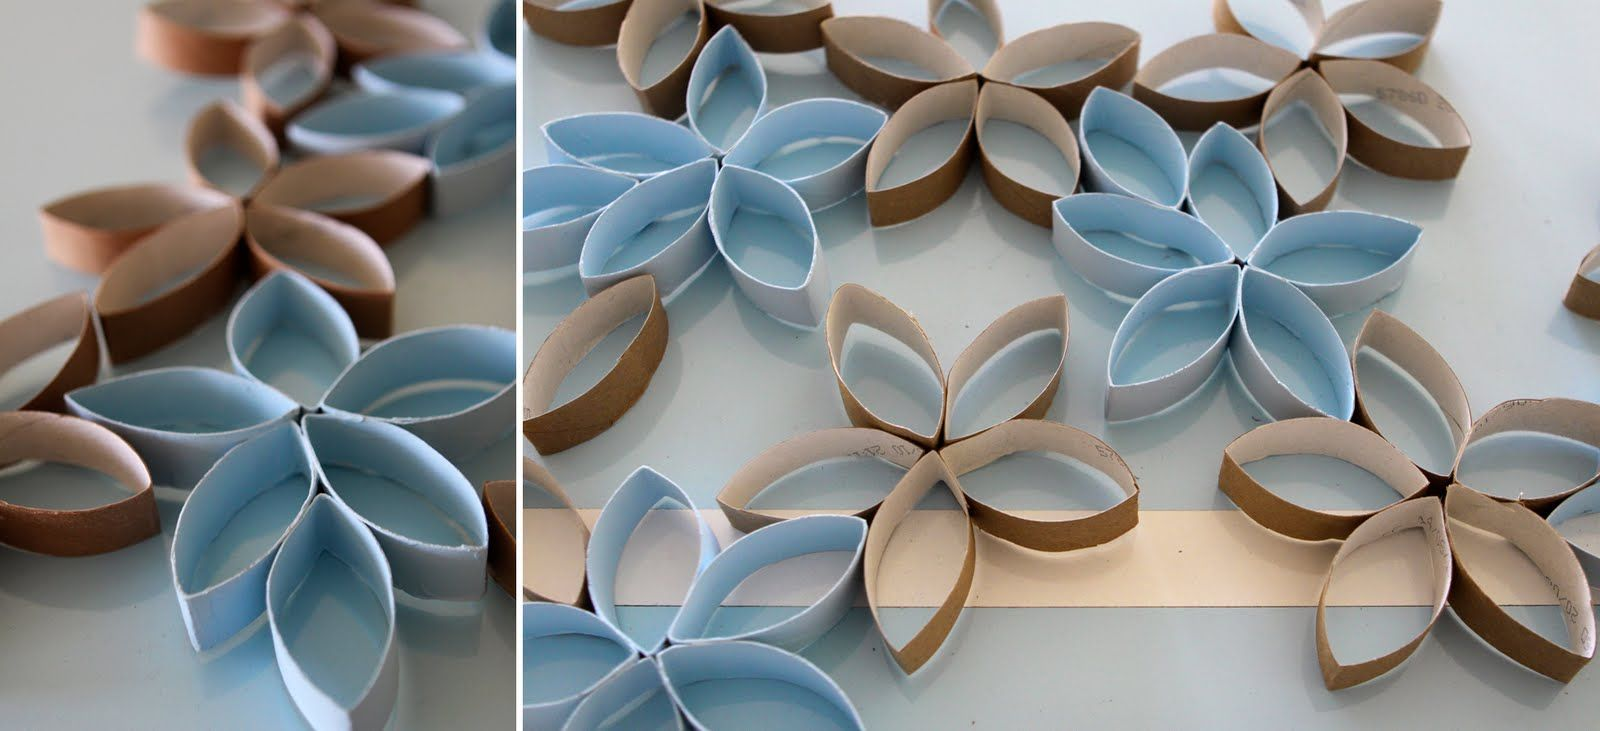 Wall Art From Toilet Paper Rolls For The Home Pinterest Toilet